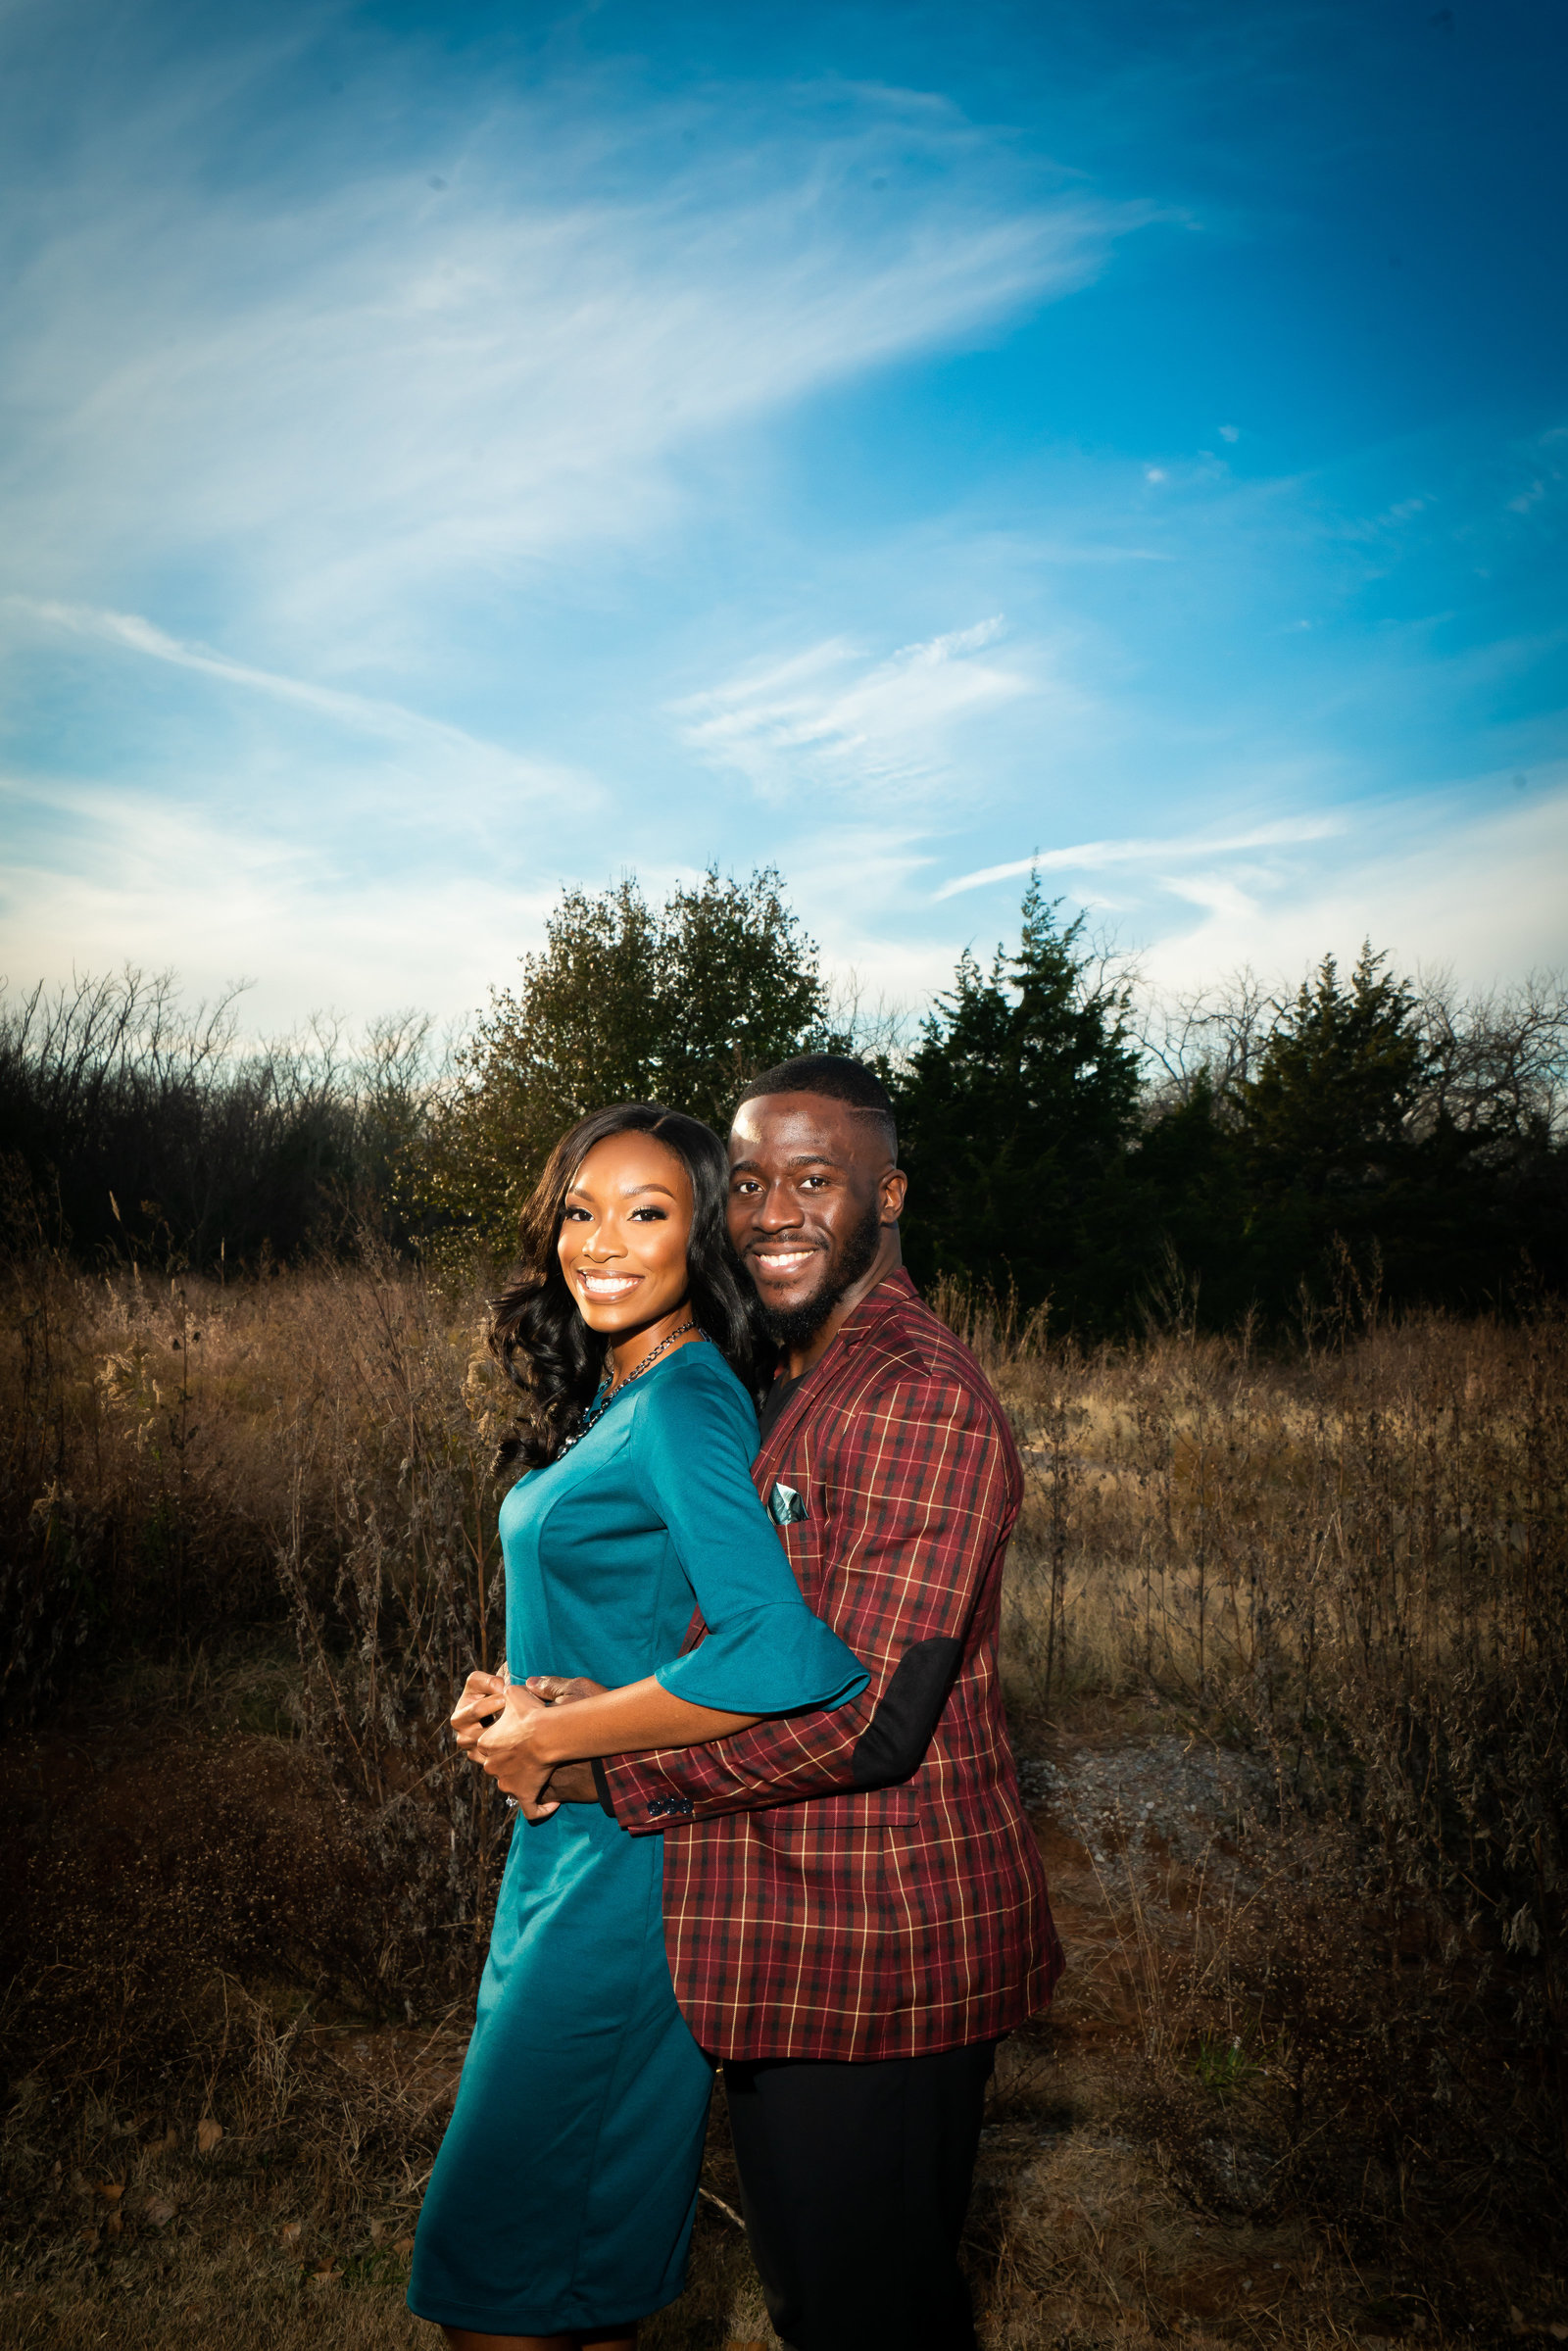 Sutton-park-norman-engagement-session-405-brides-photographer